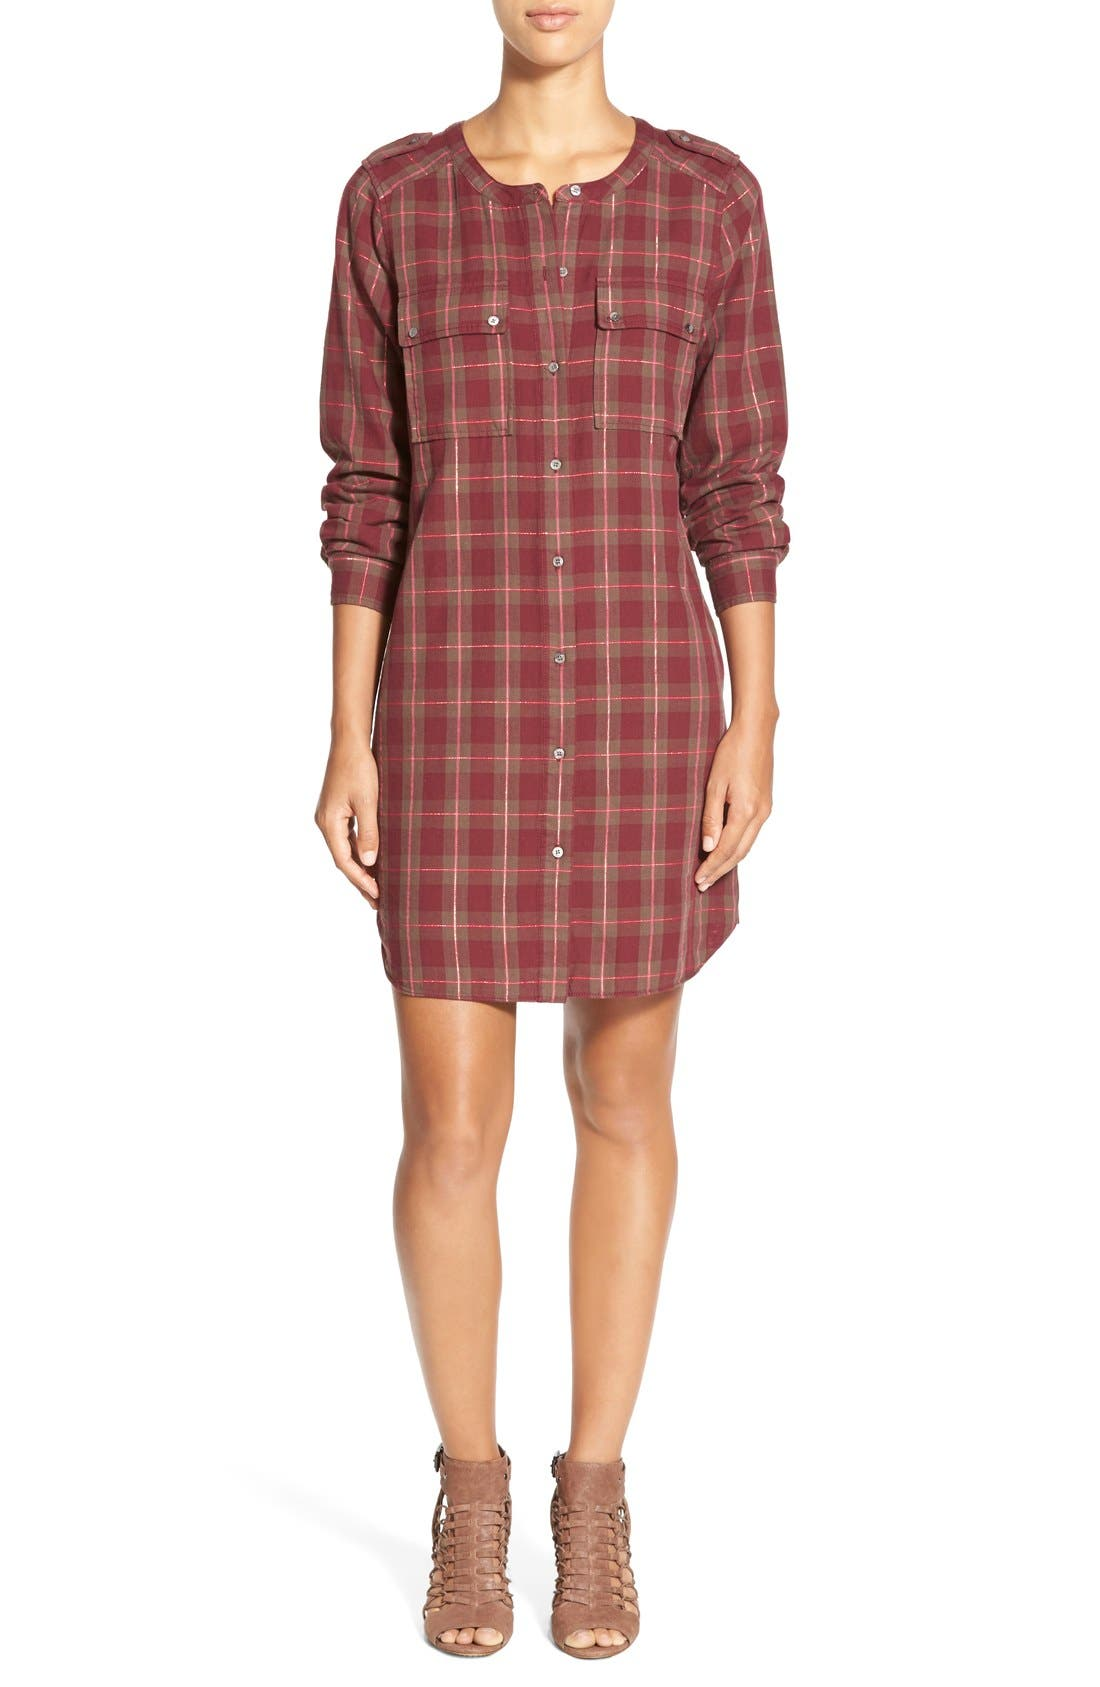 Alternate Image 1 Selected - Two by Vince Camuto Plaid Collarless Shirtdress